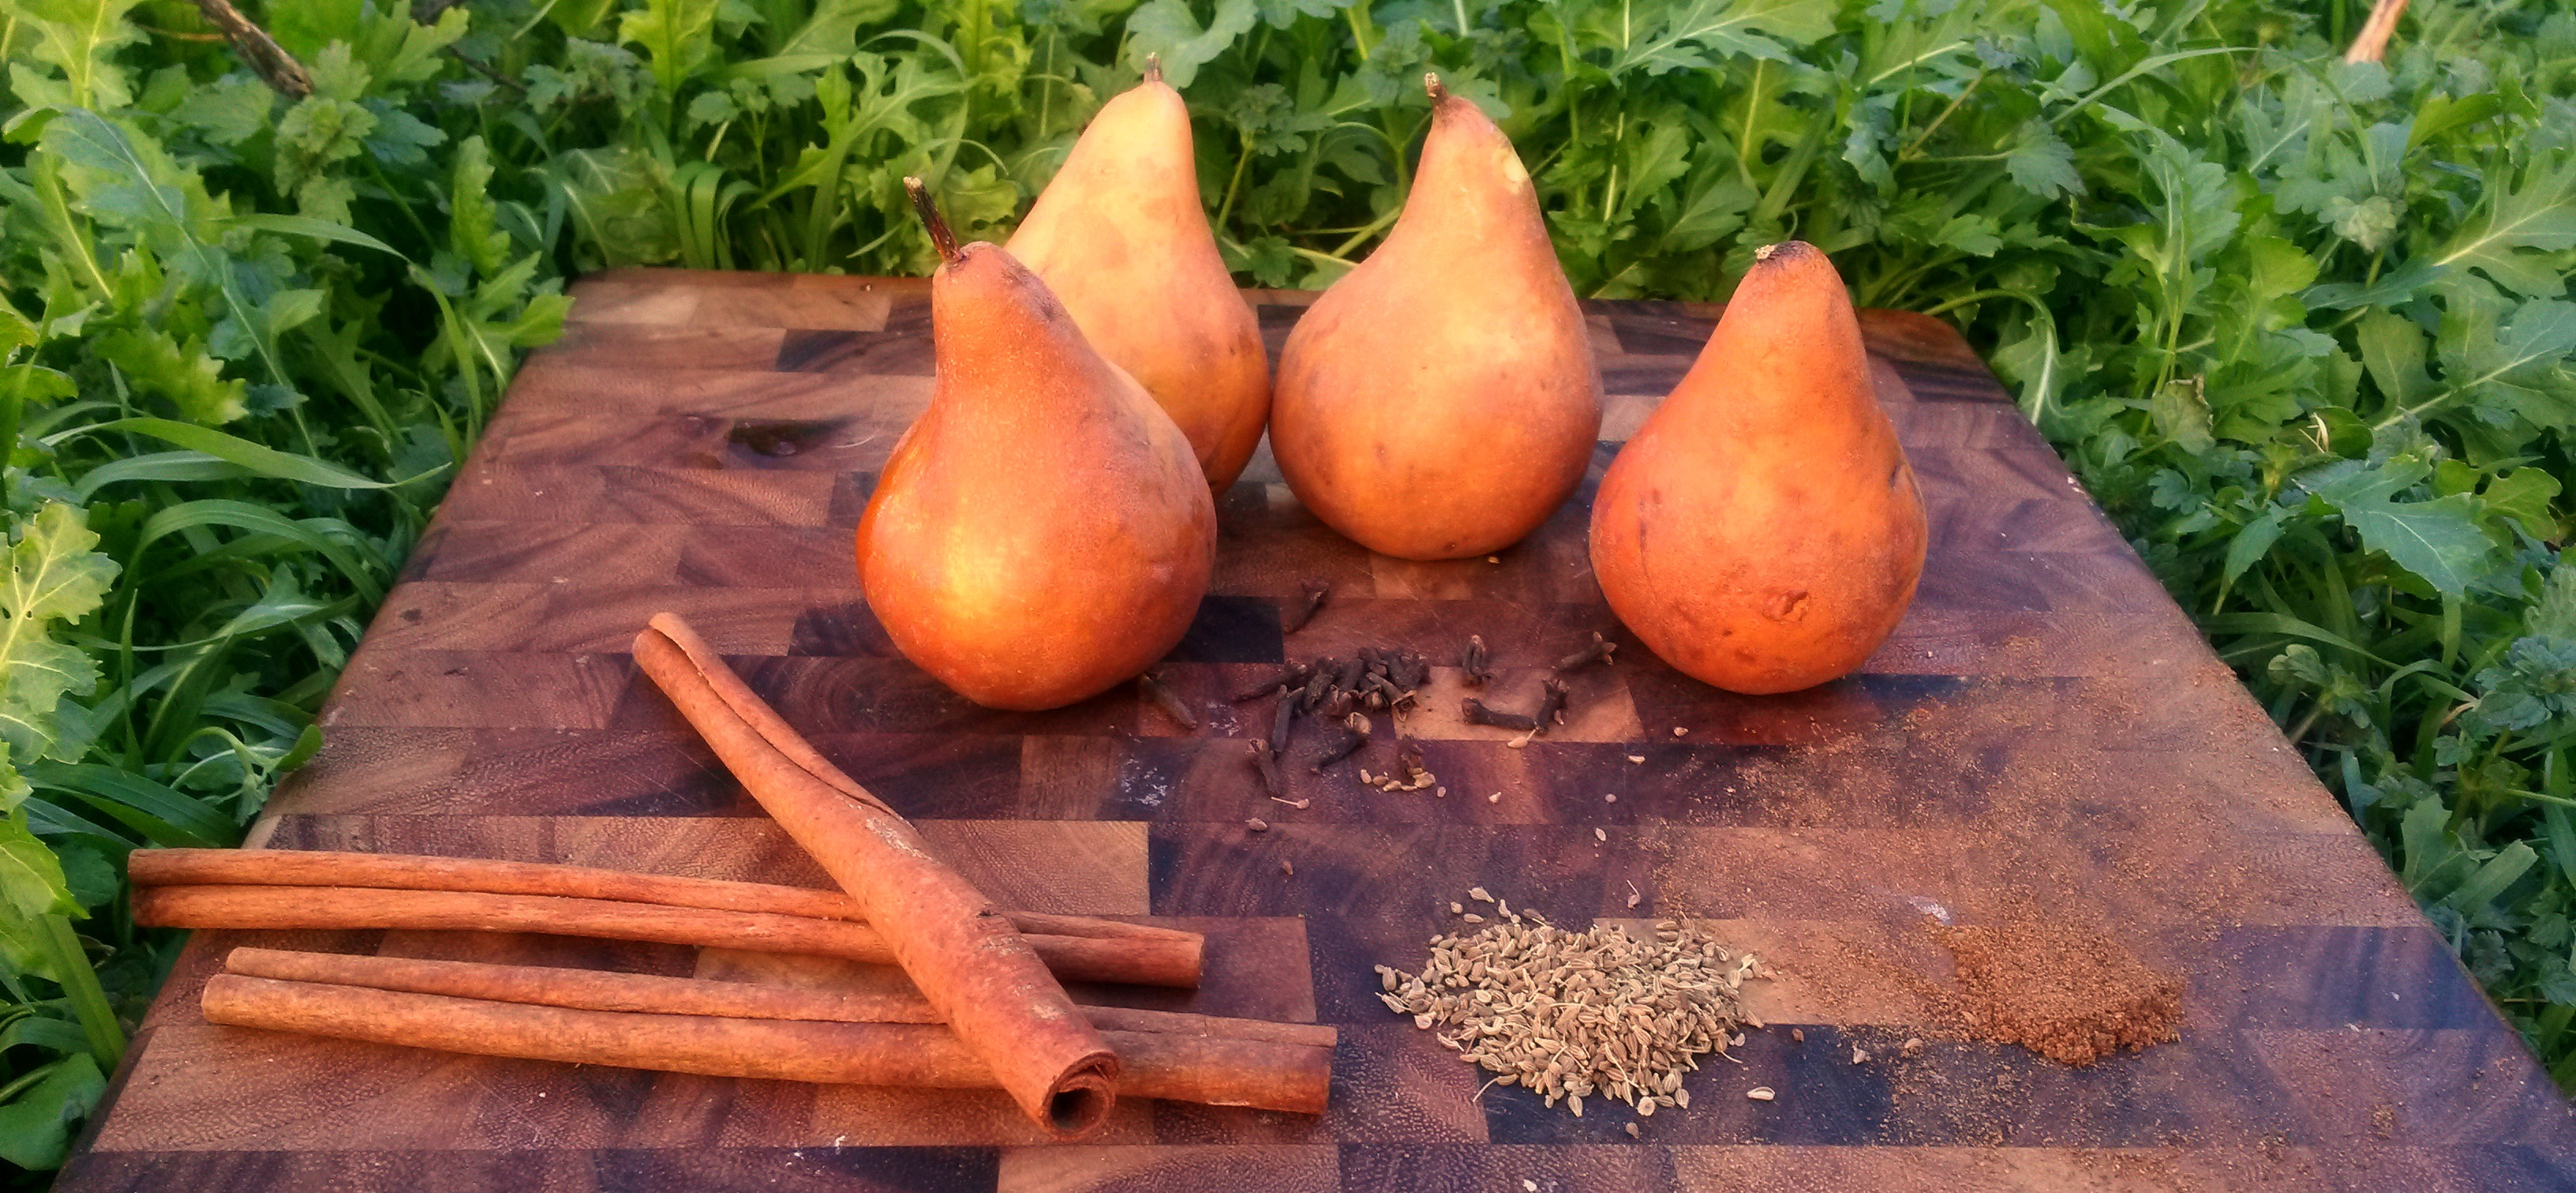 Pear Cider Ingredients